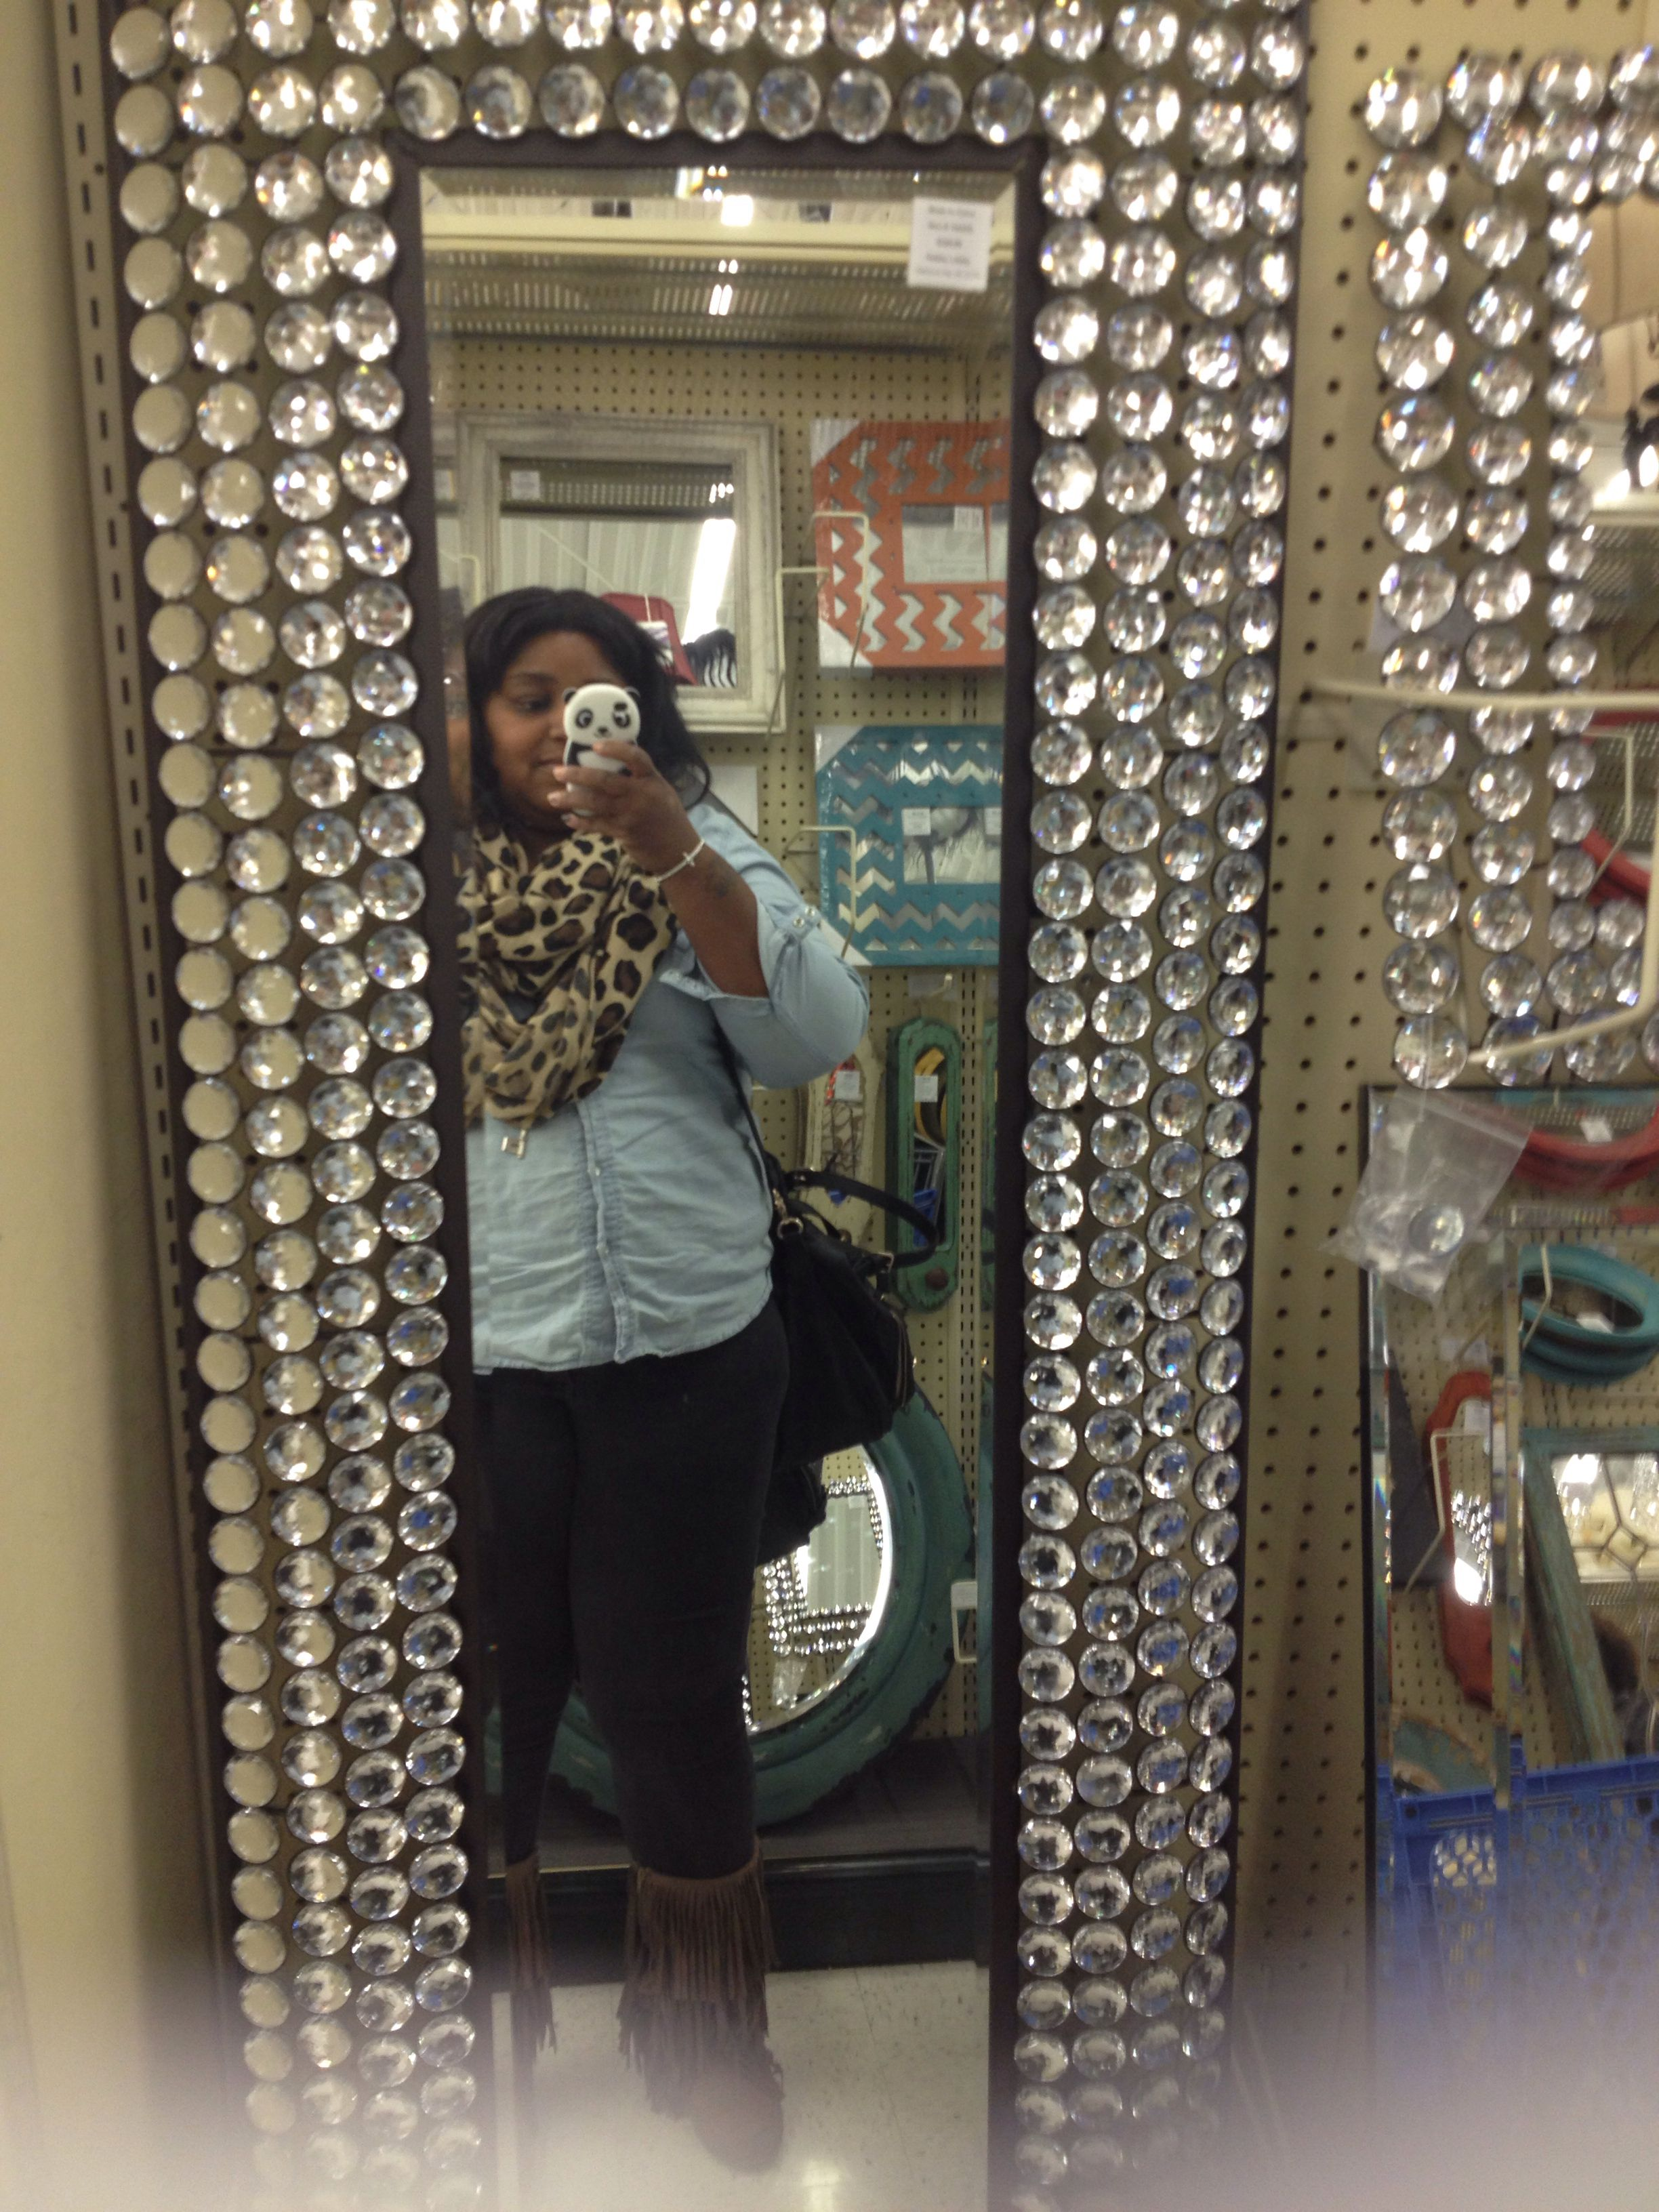 Hobby lobby mirror home decor pinterest for Decorative accessories for home online